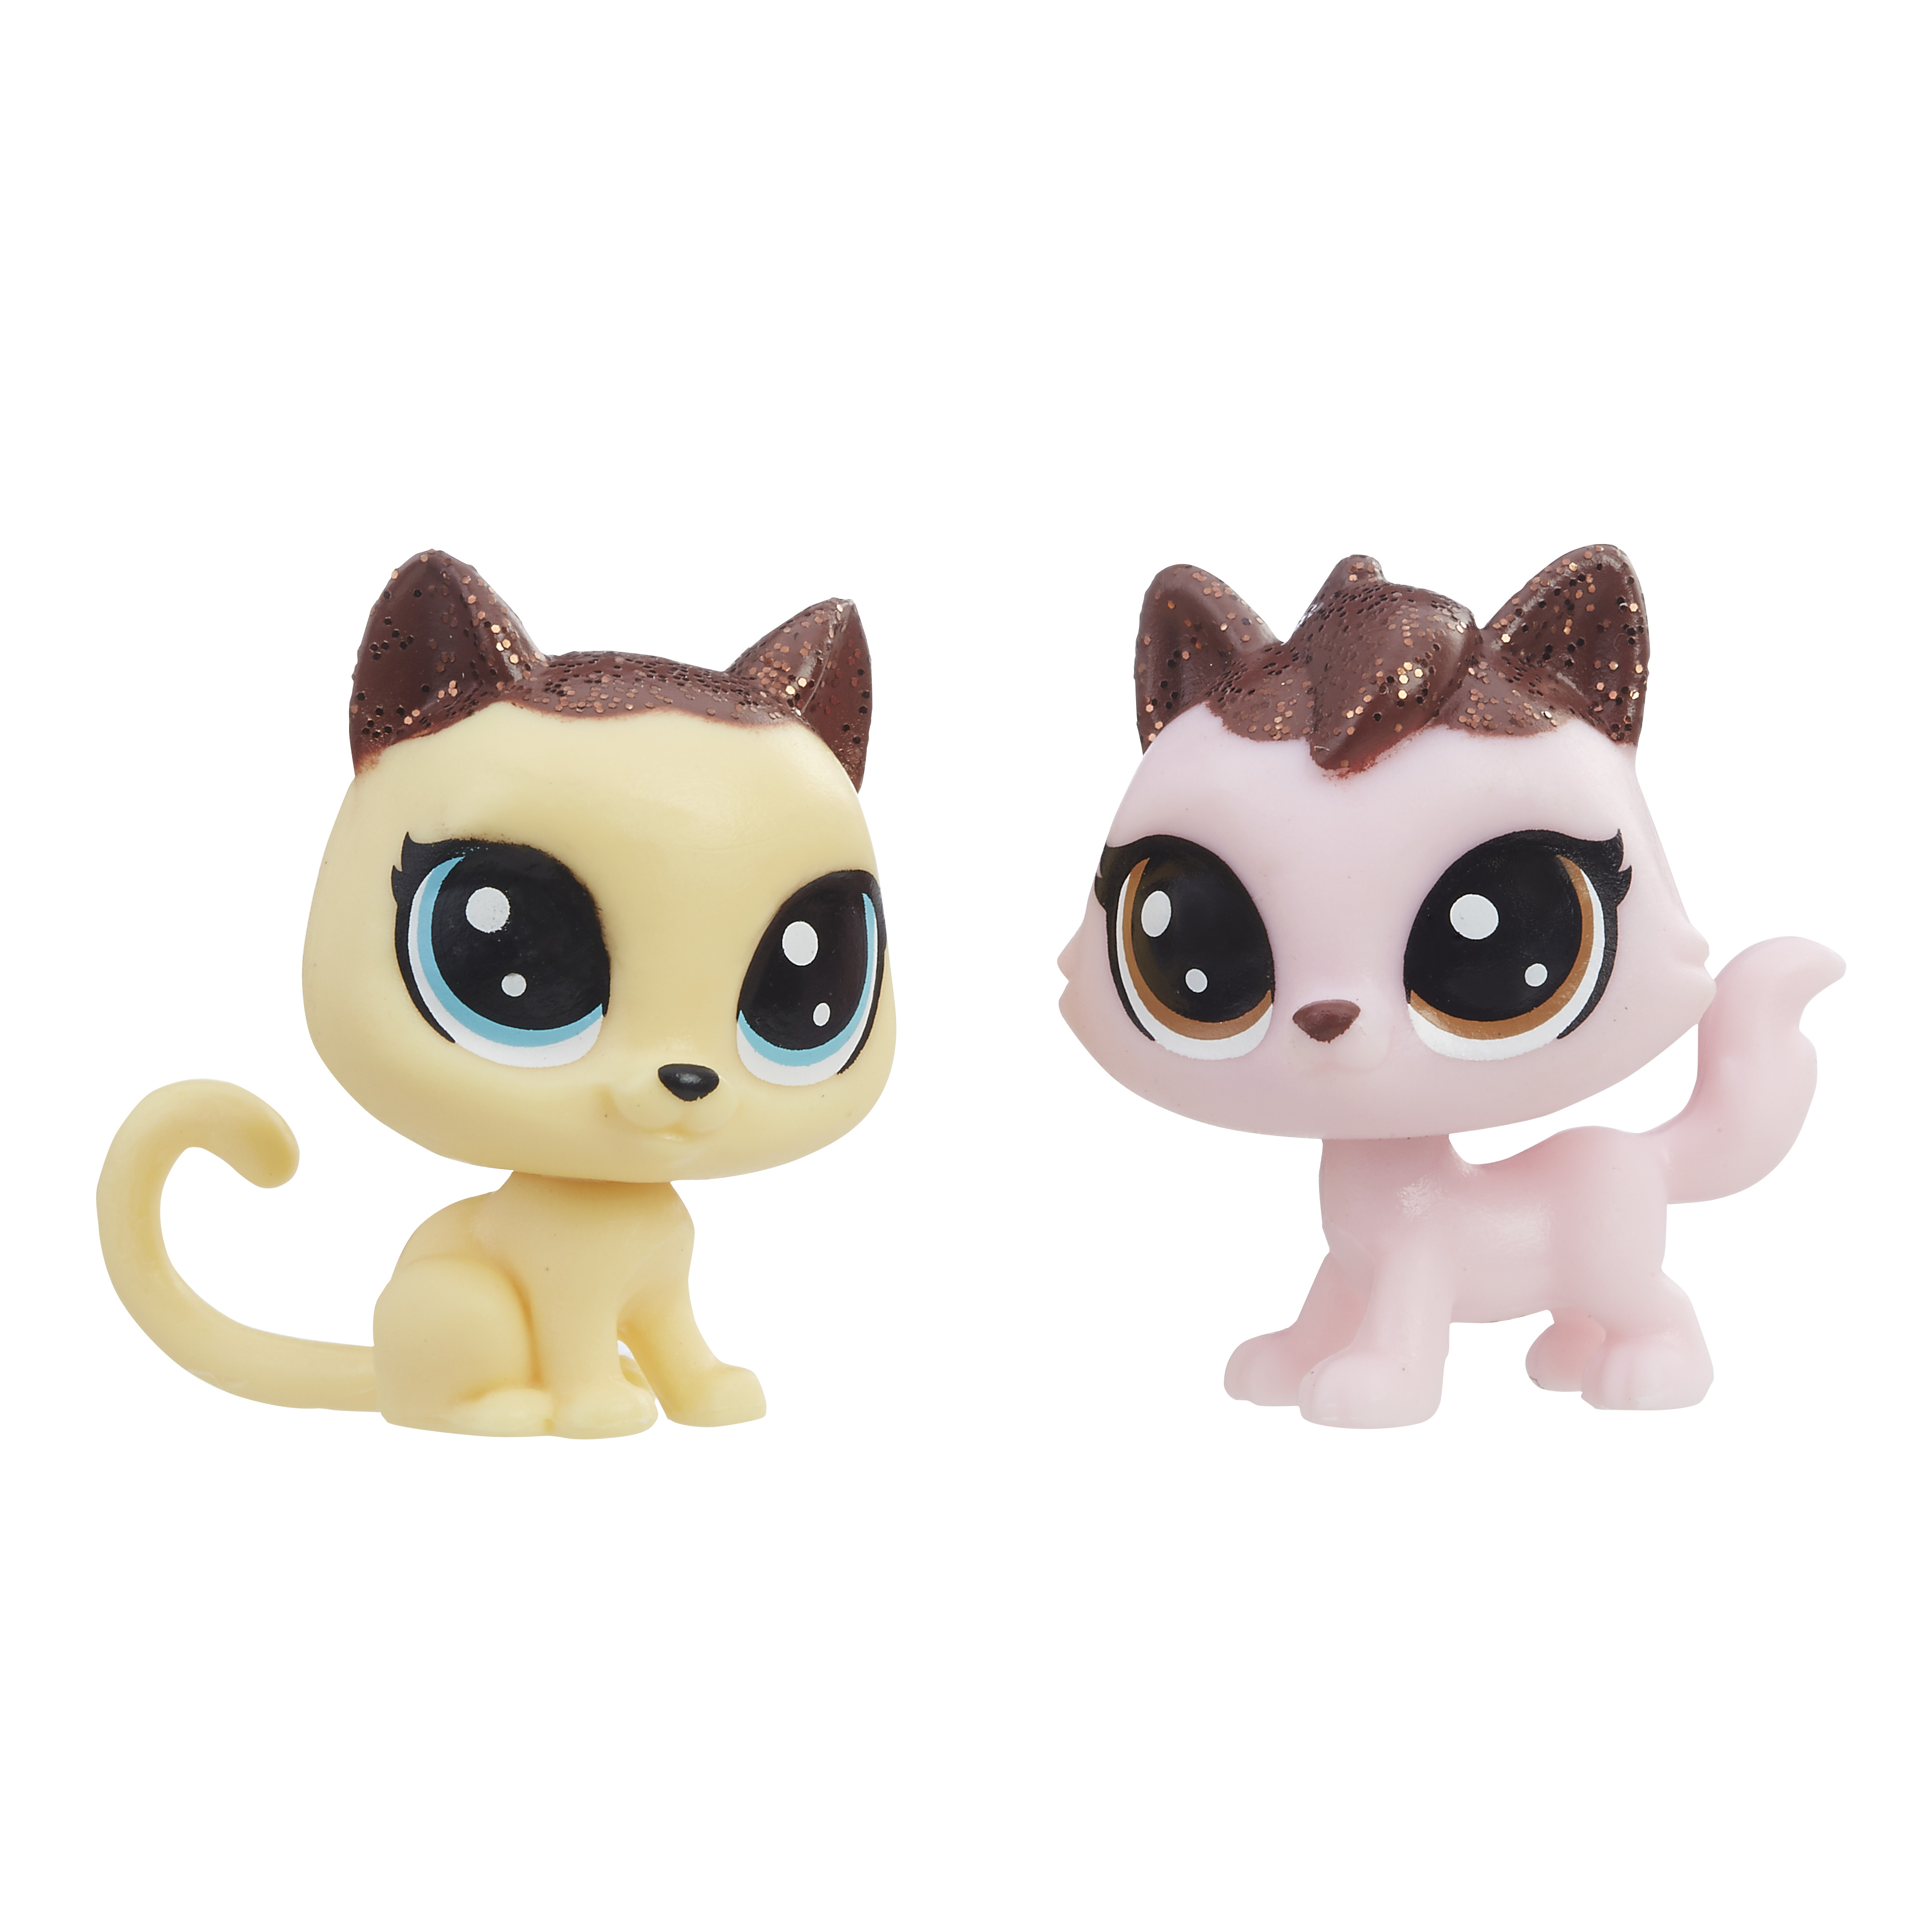 Littlest Pet Shop LITTLEST PET SHOP Набор игрушек Littlest pet shop «2 зефирных Пета» в асс. академия групп вышивка лентами littlest pet shop